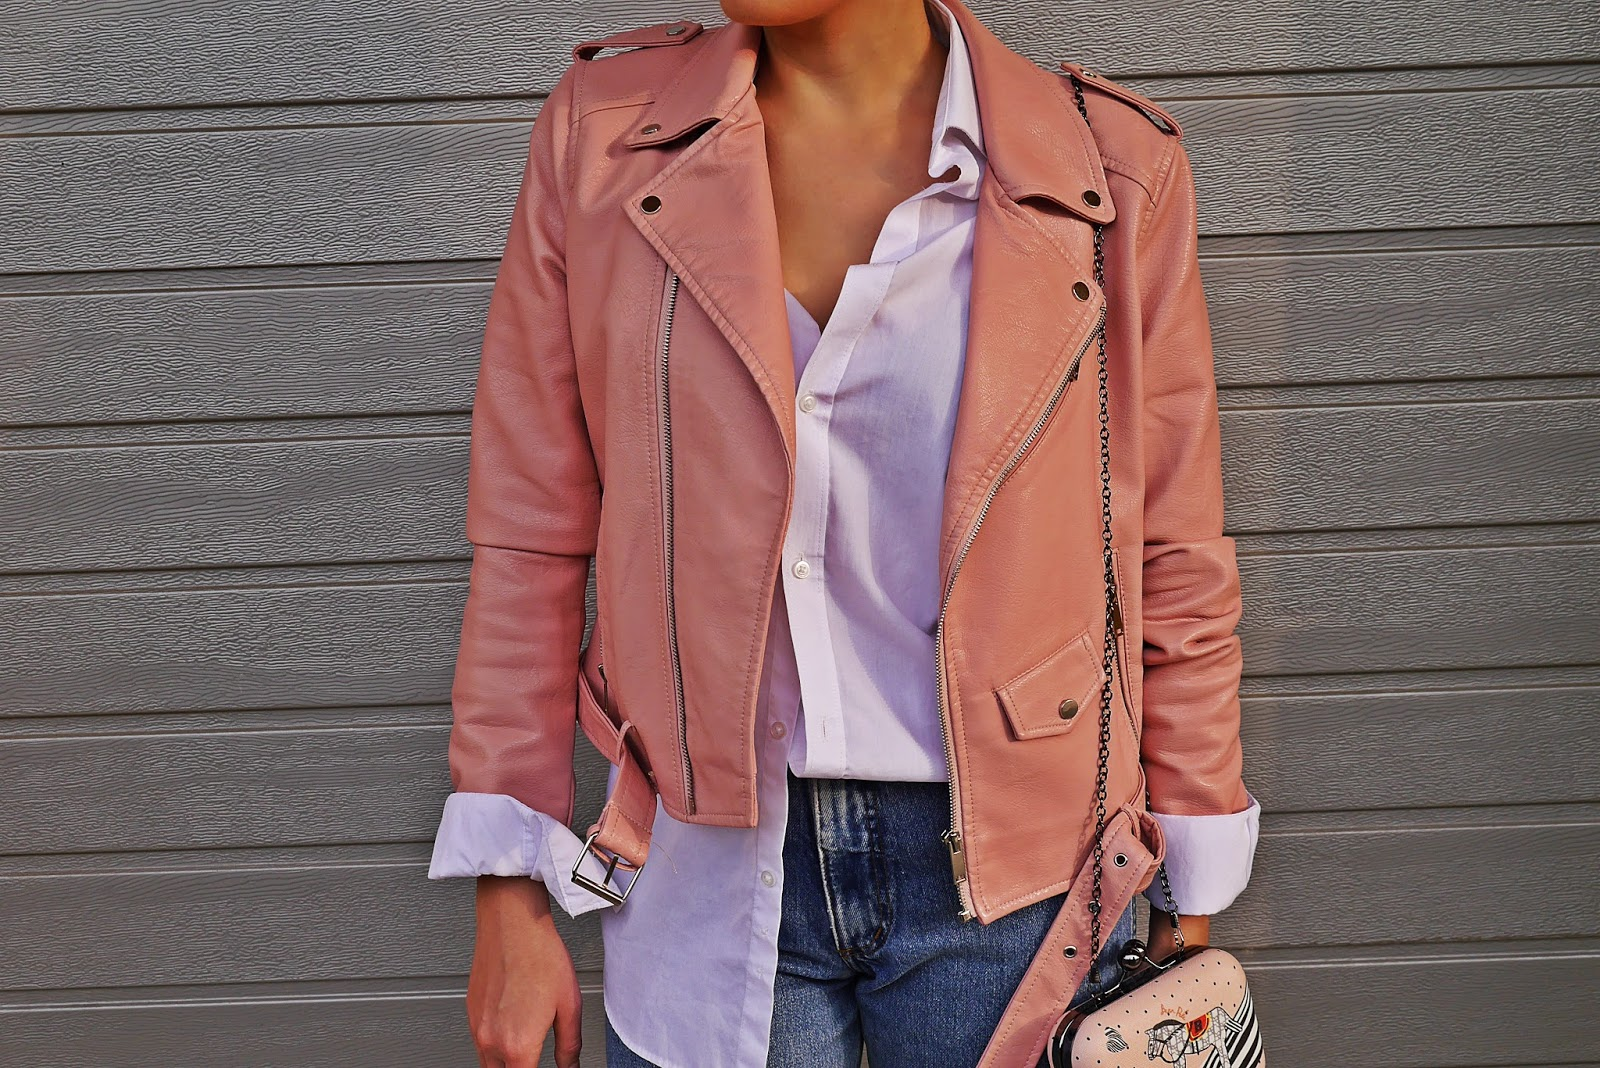 3_pink_leather_jacket_embroidery_boots_outfit_karyn_blog_modowy_271017f